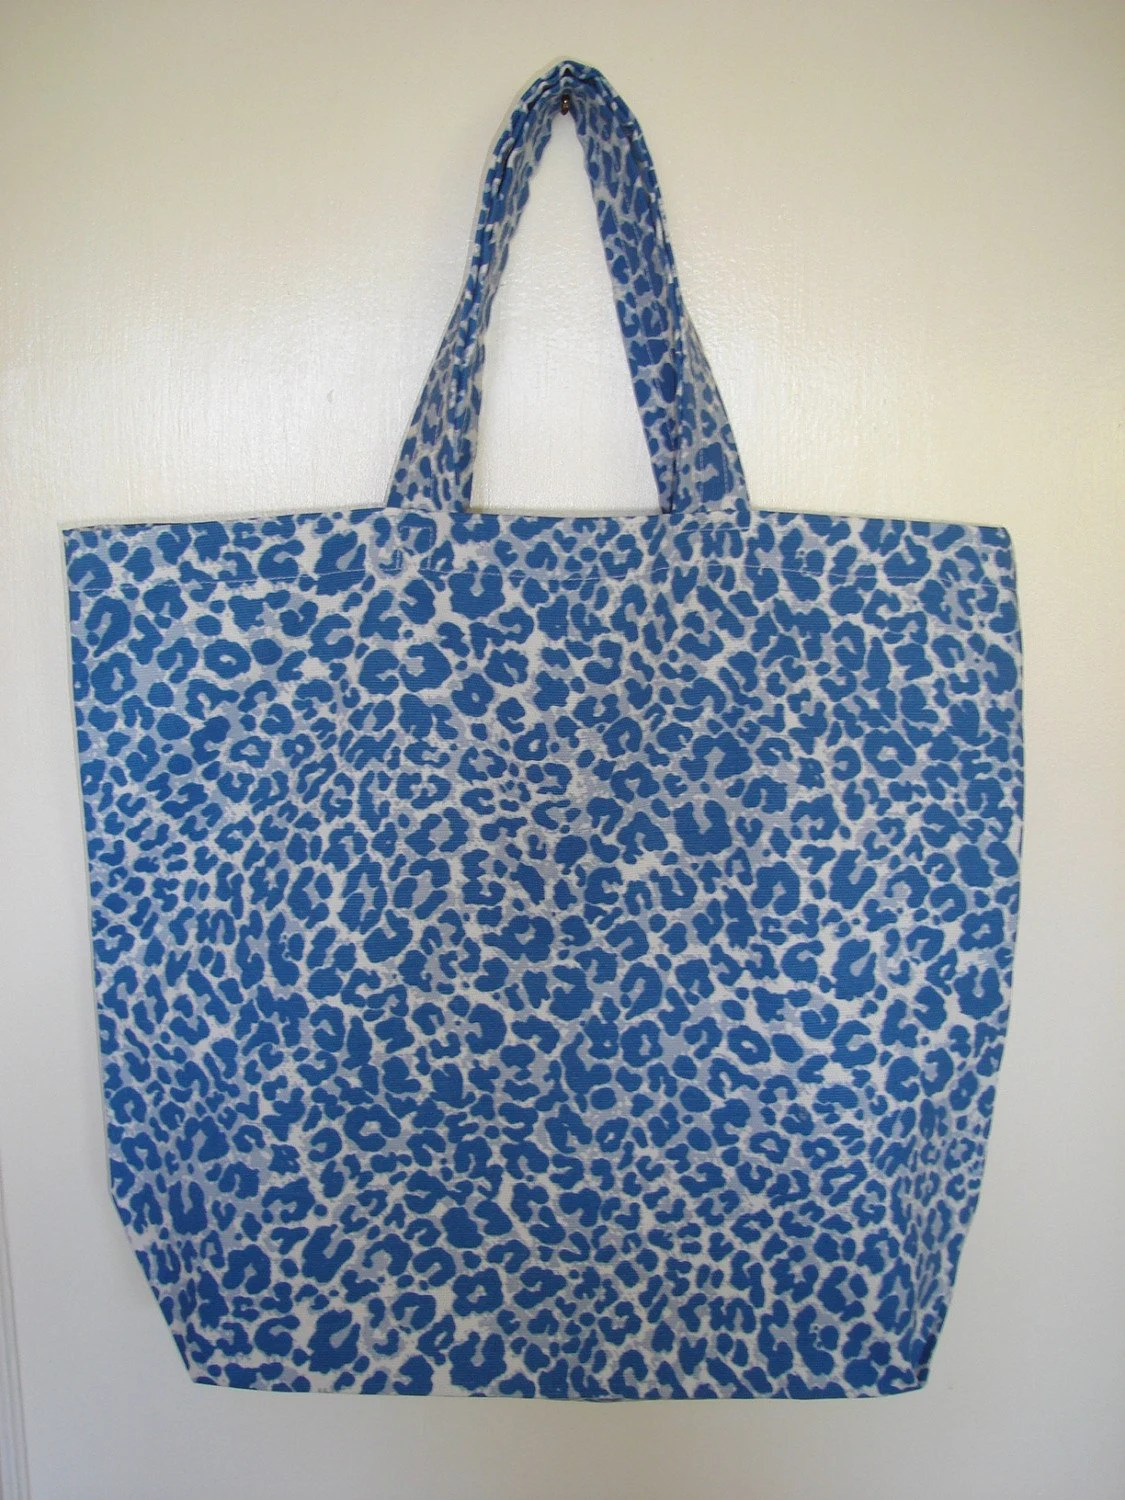 Bag,  Reusable, Tote, Eco Friendly, Blue Faux Animal Print by ButtermilkCottage on Etsy